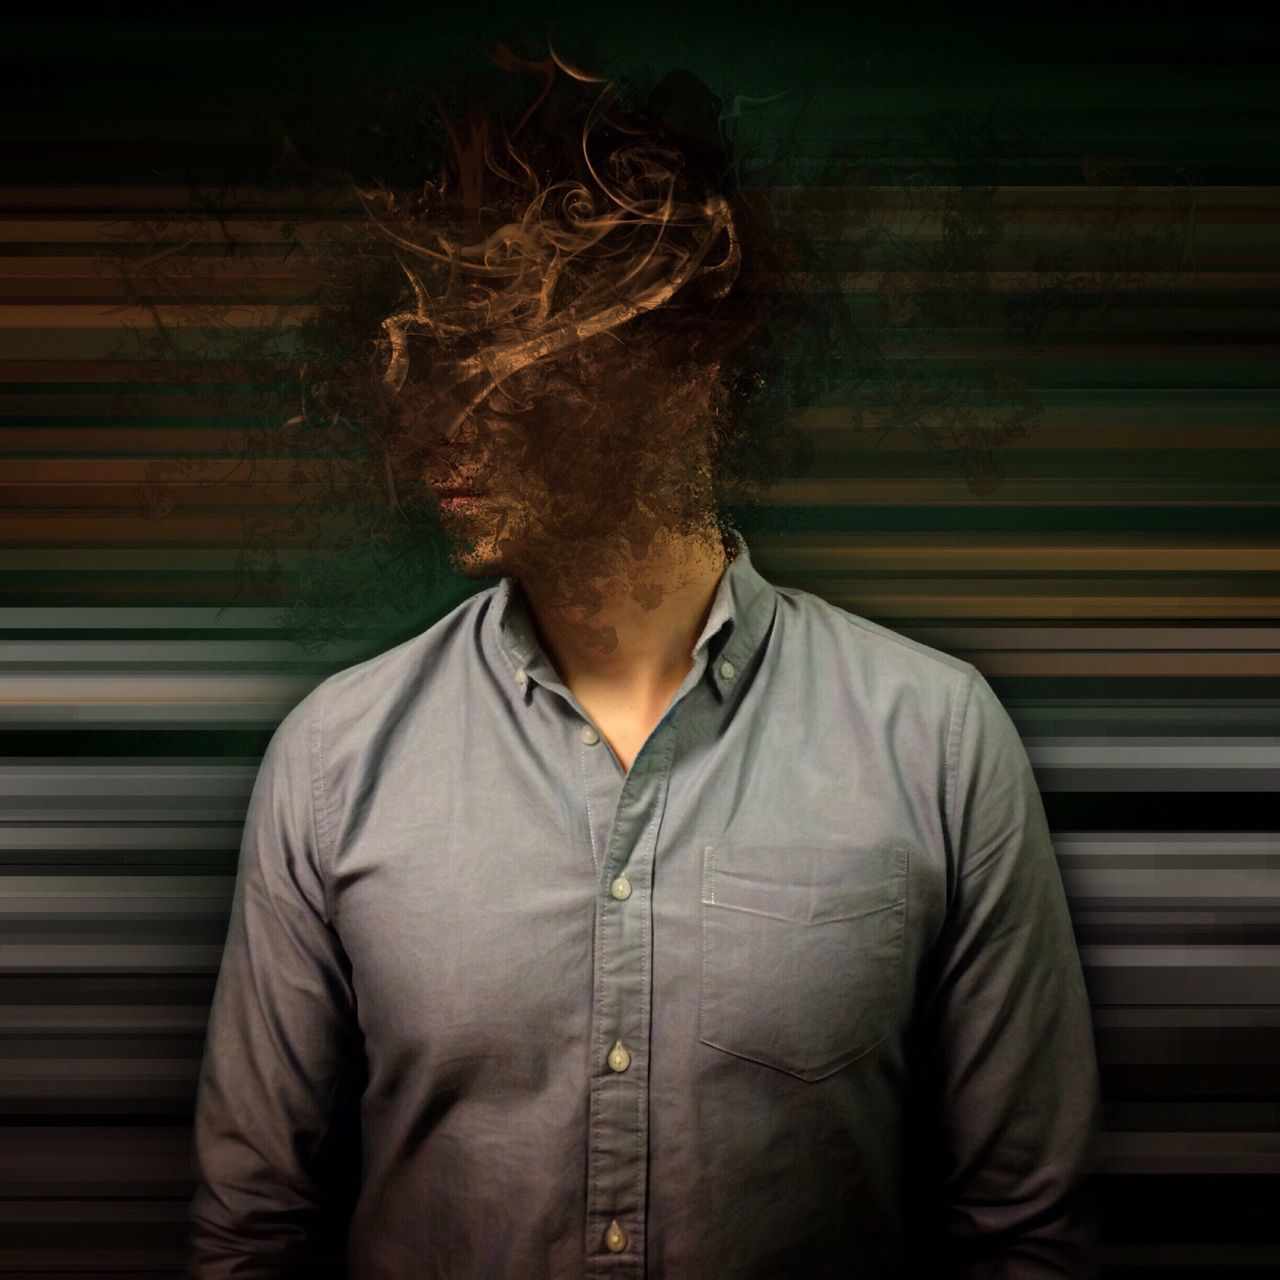 Man With Obscured Face Standing Against Patterned Wall